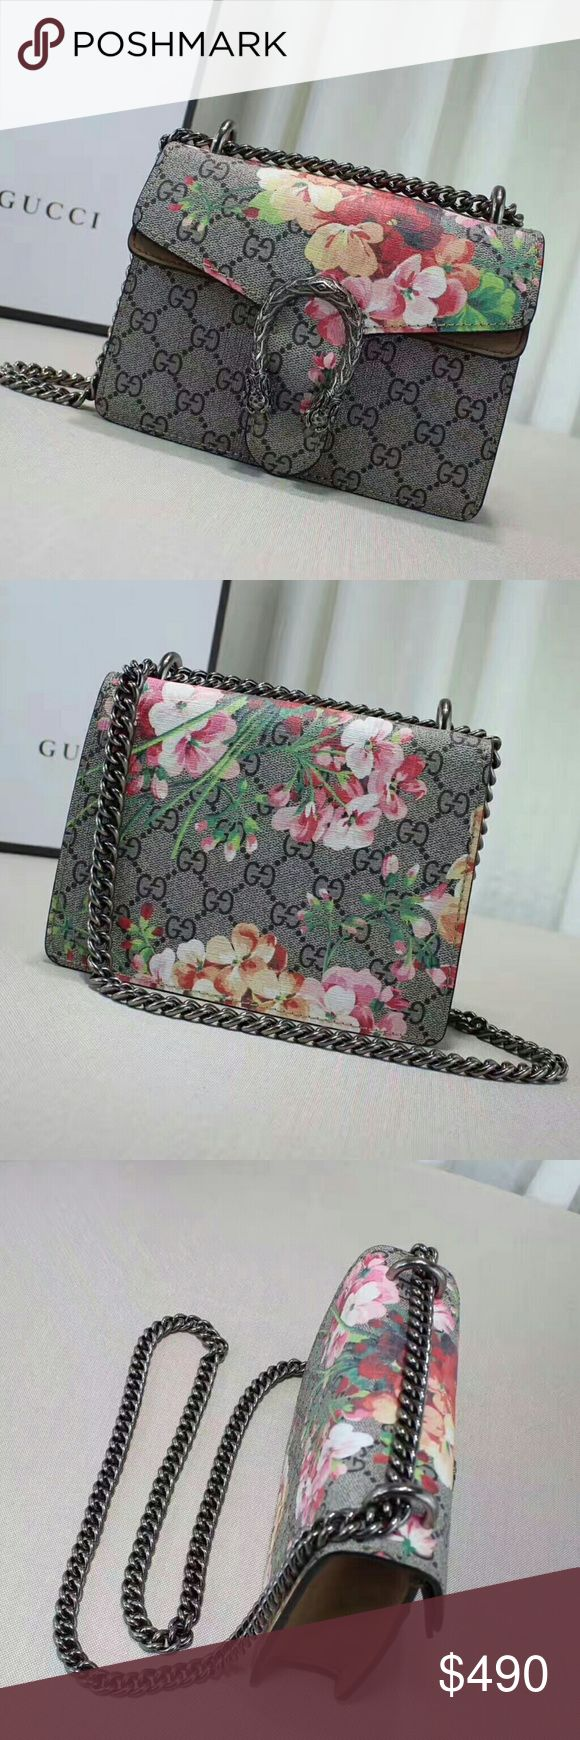 Gucci Dionysus Floral Shoulder Bag If you would like to purchase this item or learn more about our product listings, please direct message us on Instagram:   @laluxlounge @laluxlounge @laluxlounge  Check out our customer reviews to ensure that your purchase will be worthwhile!  Product packaging and shipping times vary per item Gucci Bags Shoulder Bags